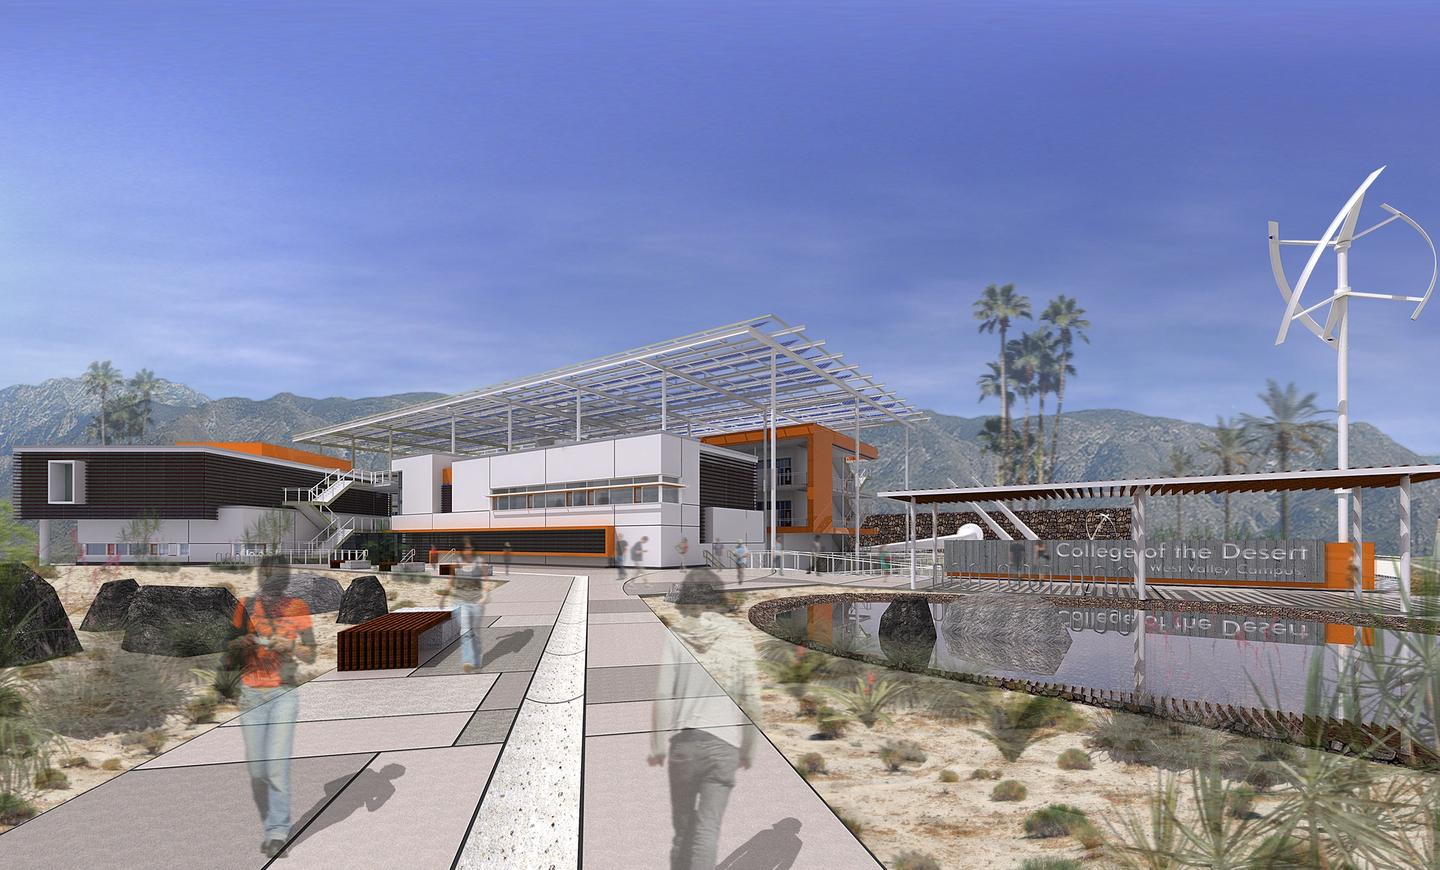 Conceptual image of HGA's Palm Springs campus design (Image copyright HGA Architects and Engineers)